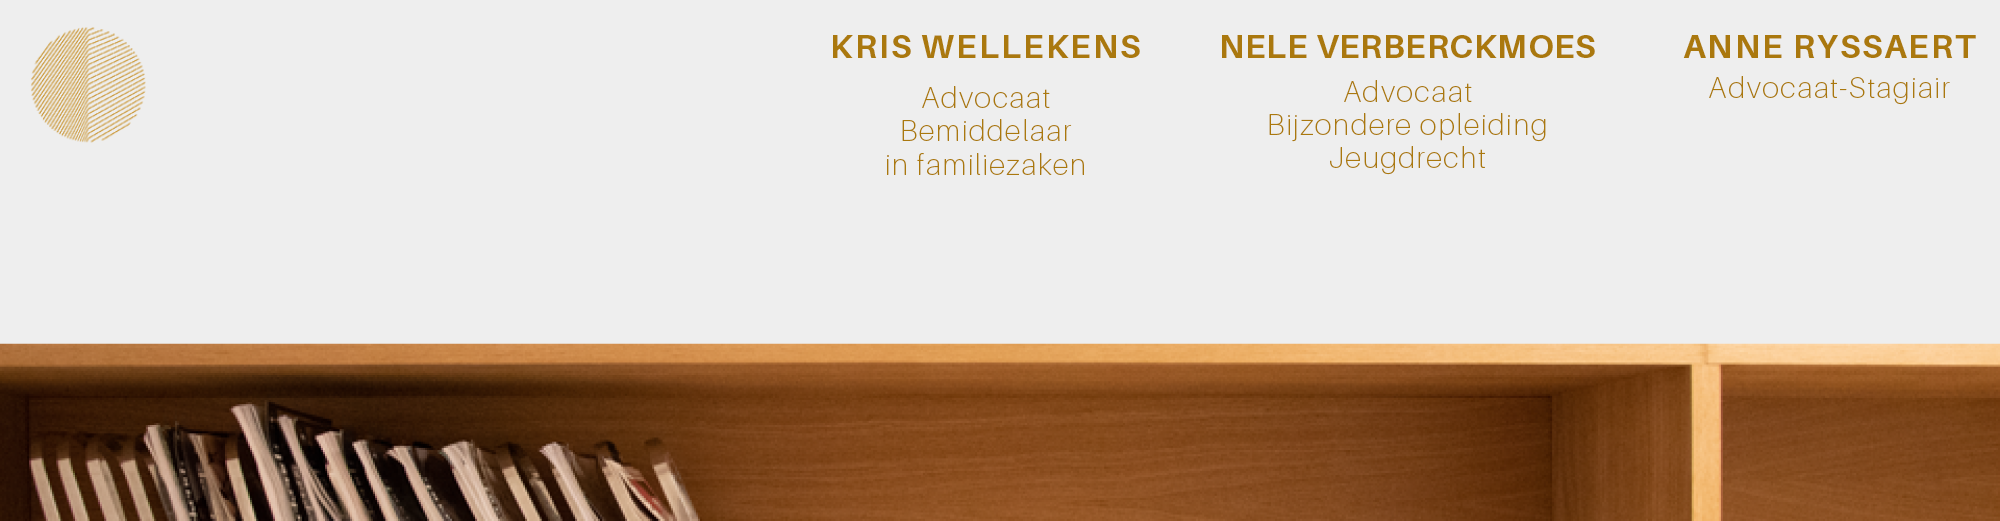 Advocatenkantoor Kris Wellekens